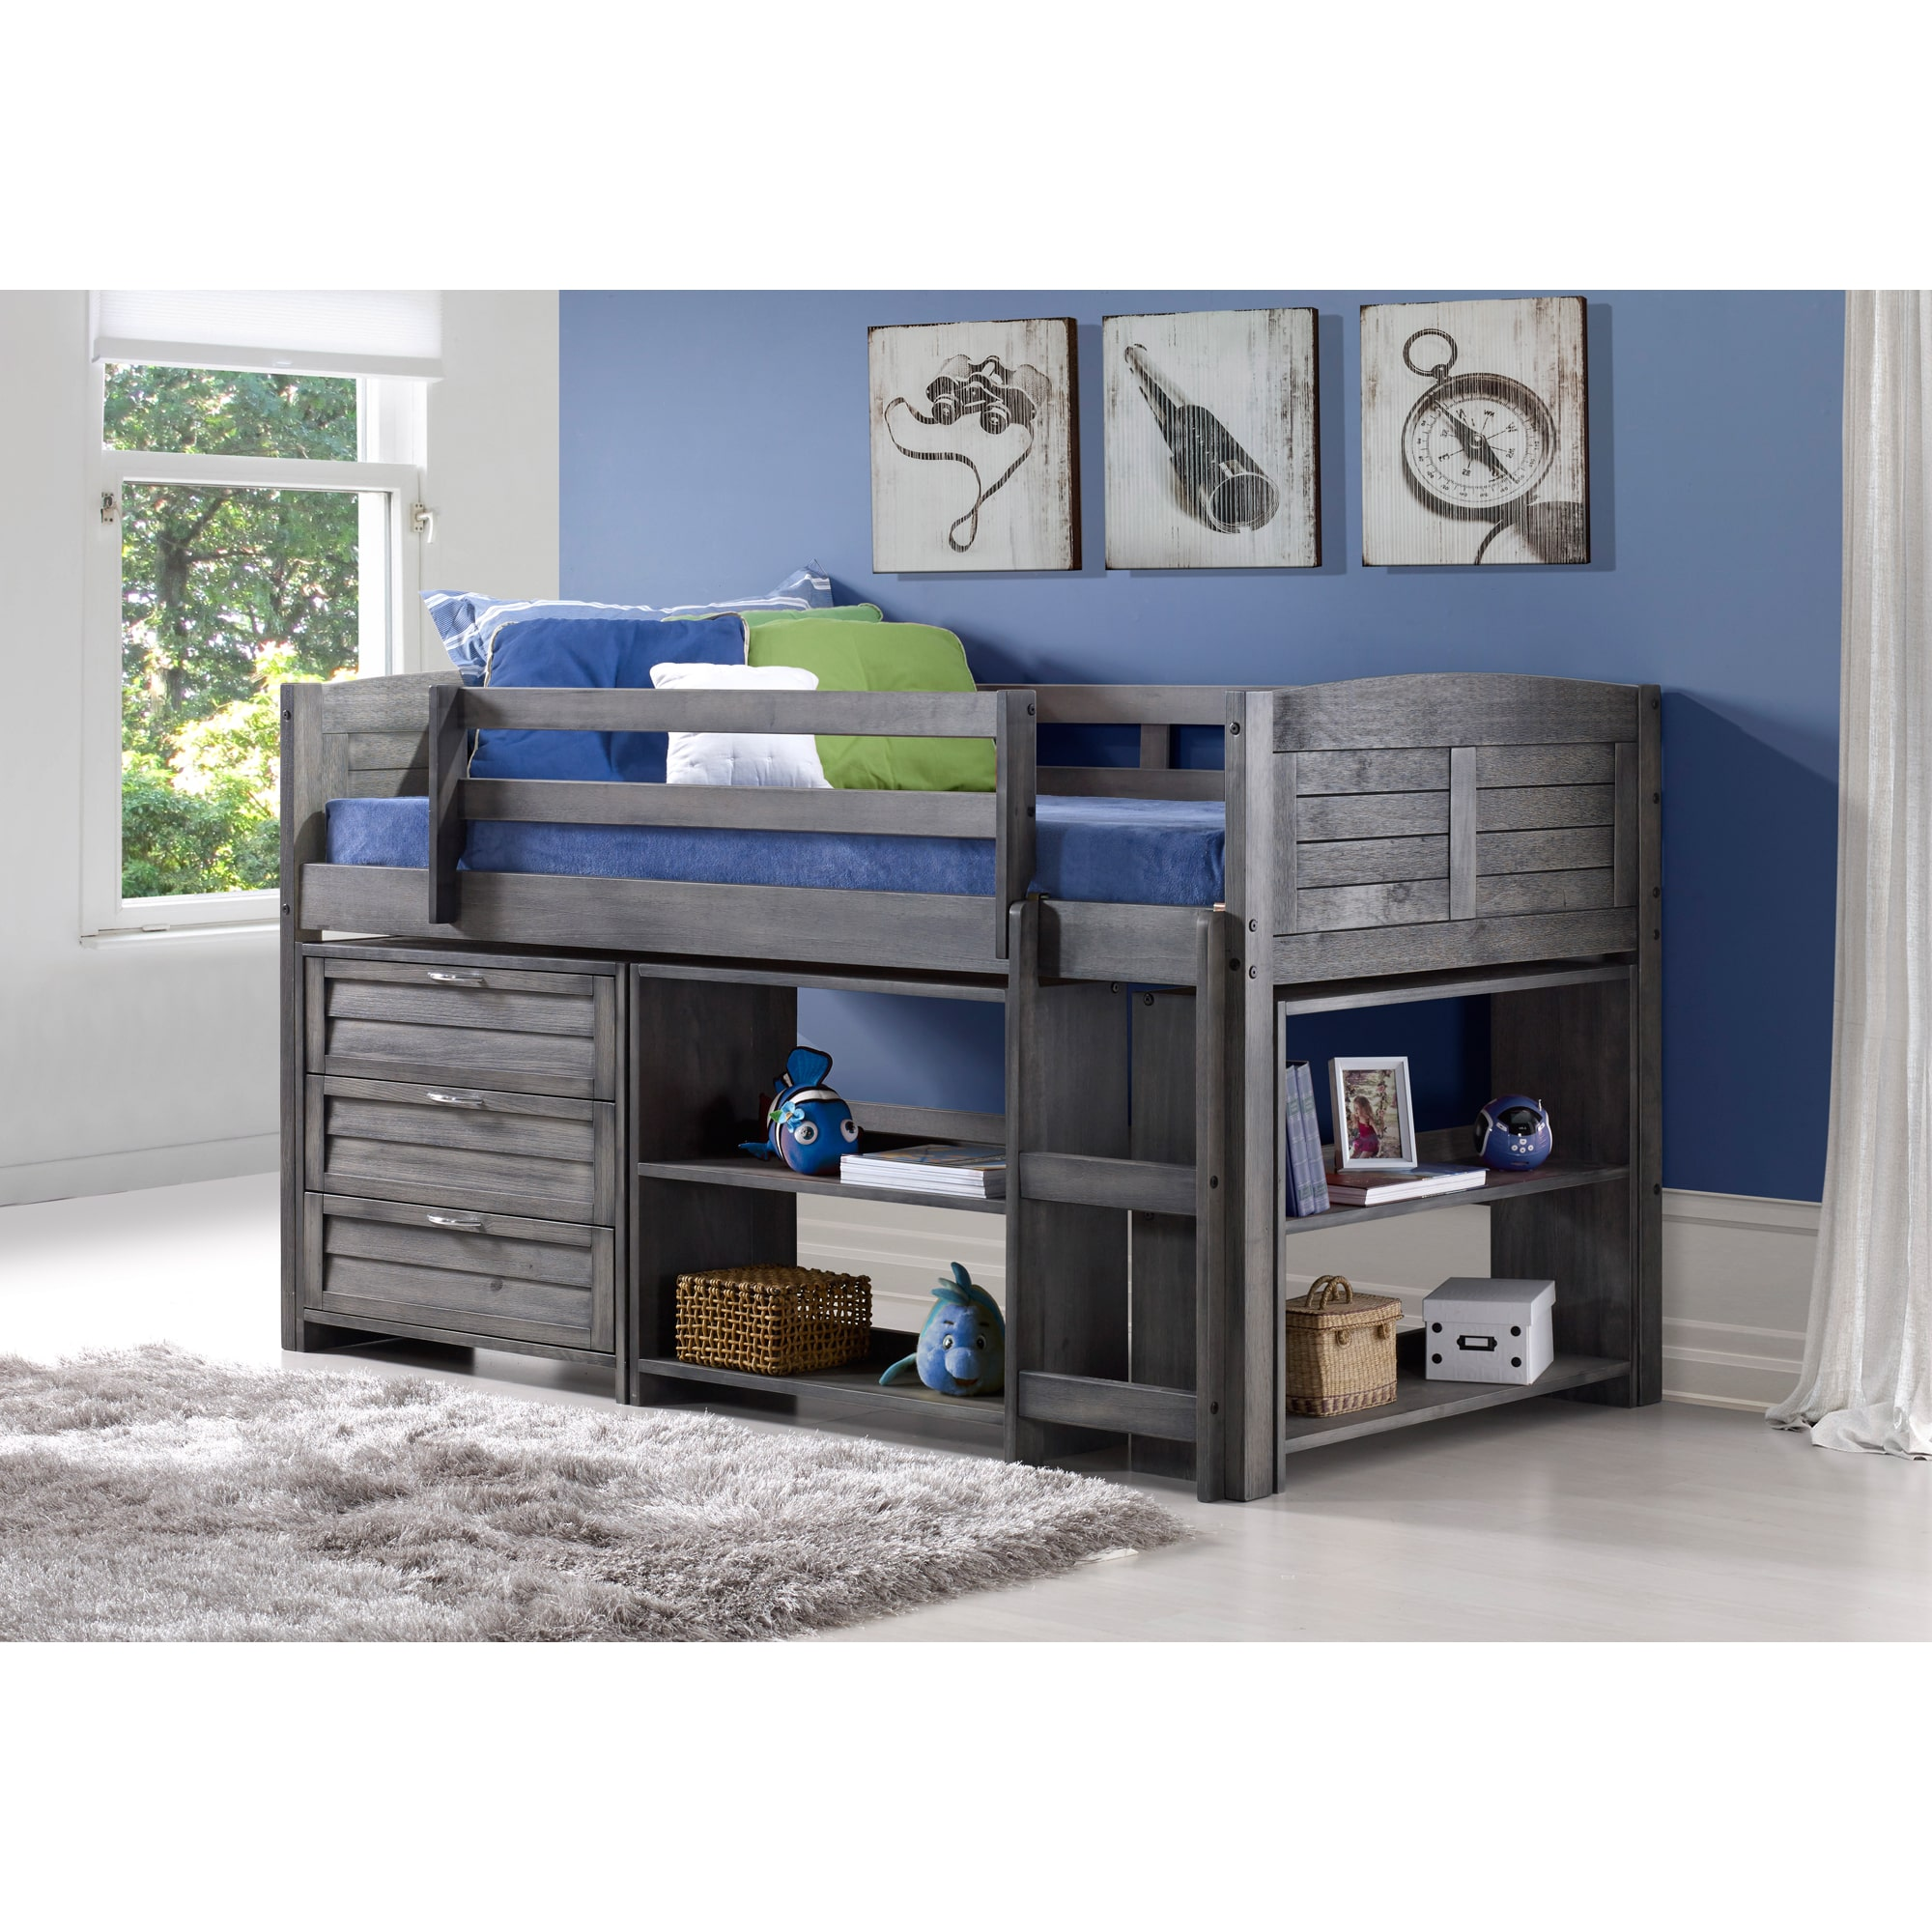 Donco Kids  Antique Grey Pine Wood Twin Louver Low Loft Bed with 3-Drawer Chest, Shelves, and Small Bookcase